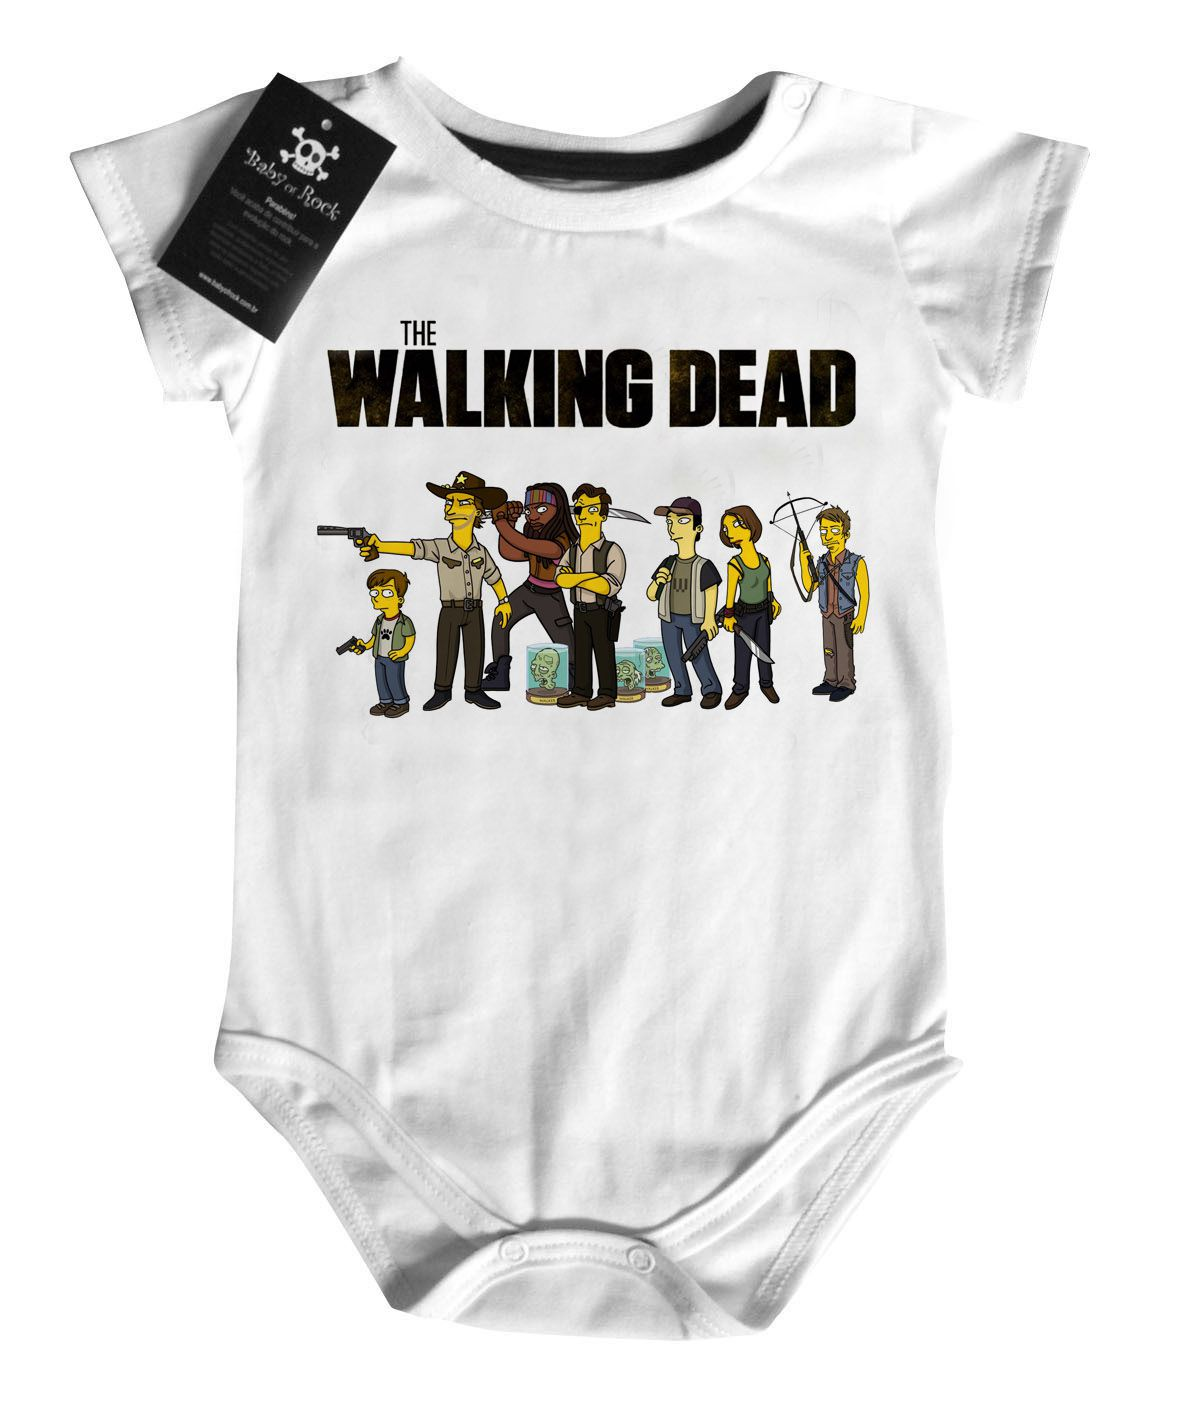 Body Bebê the walking dead SIMPSONS - White  - Baby Monster S/A